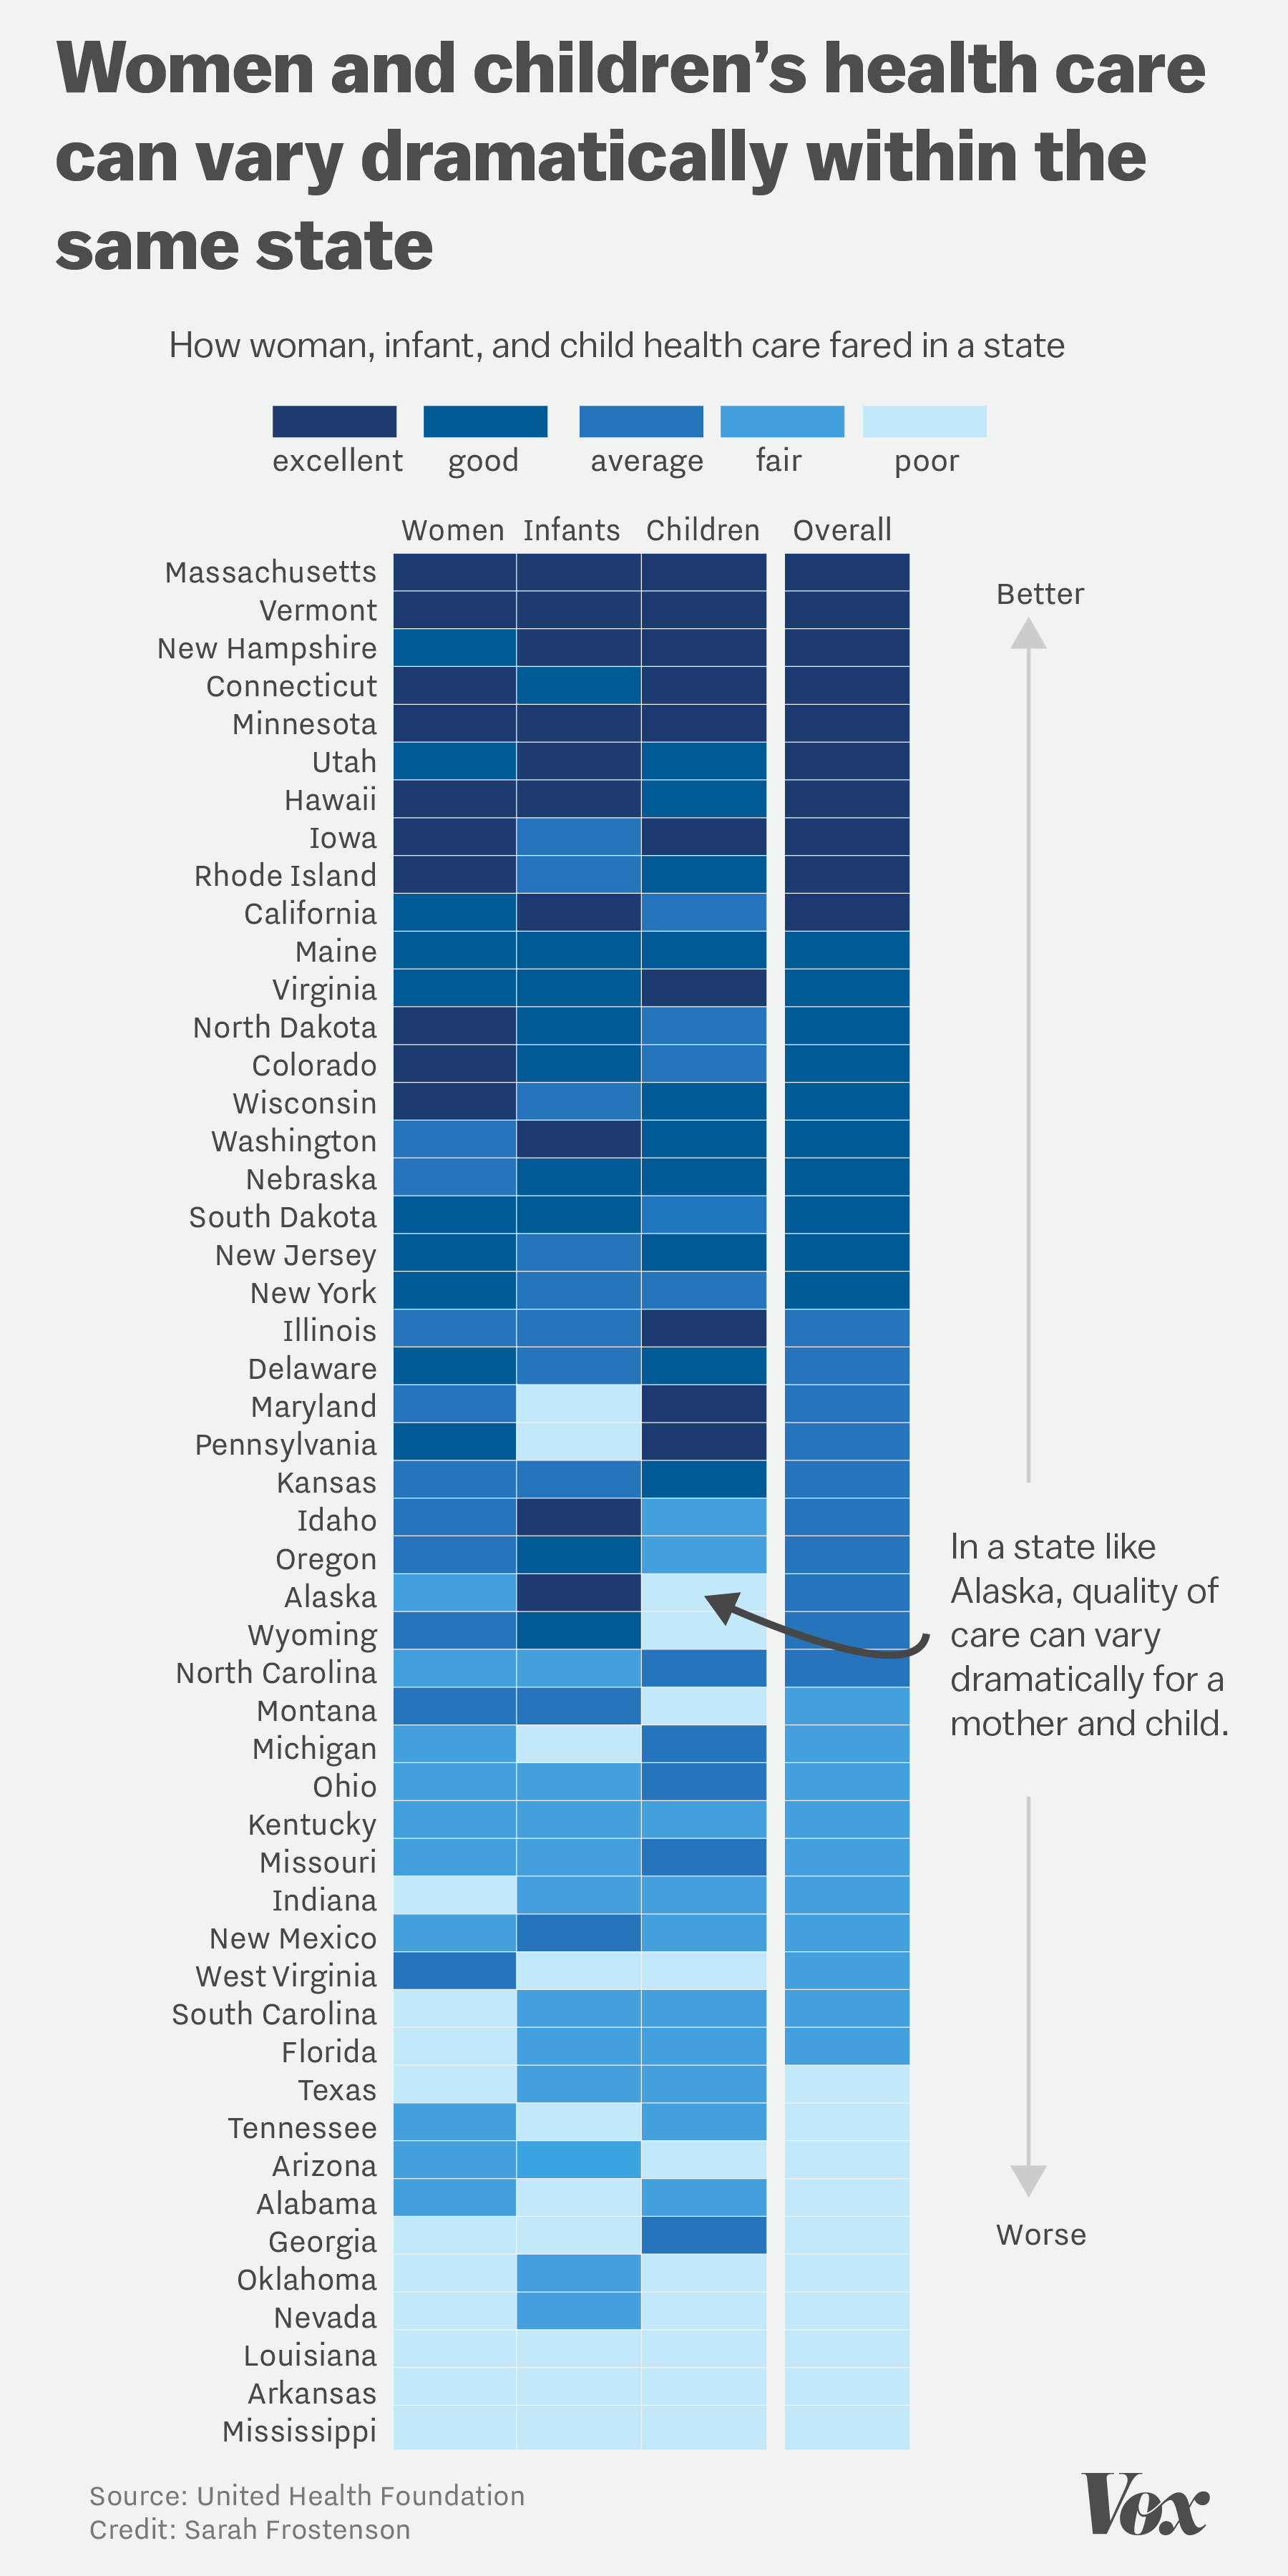 The Study Found That The Largest Variations In Ranks Within A State Existed  In Alaska,